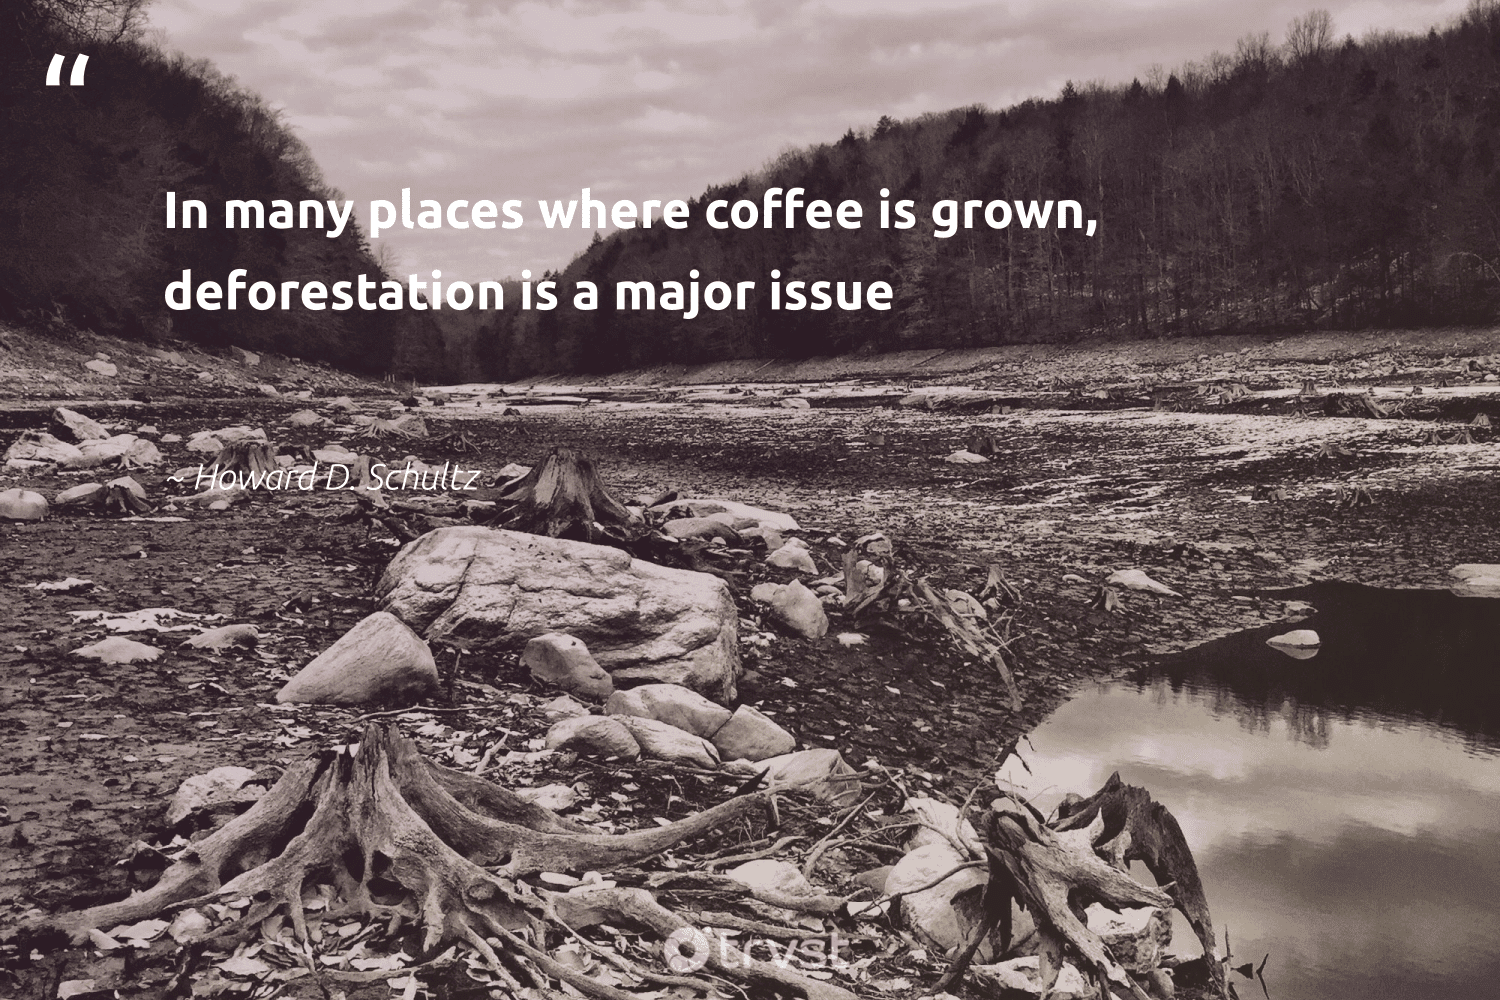 """In many places where coffee is grown, deforestation is a major issue""  - Howard D. Schultz #trvst #quotes"